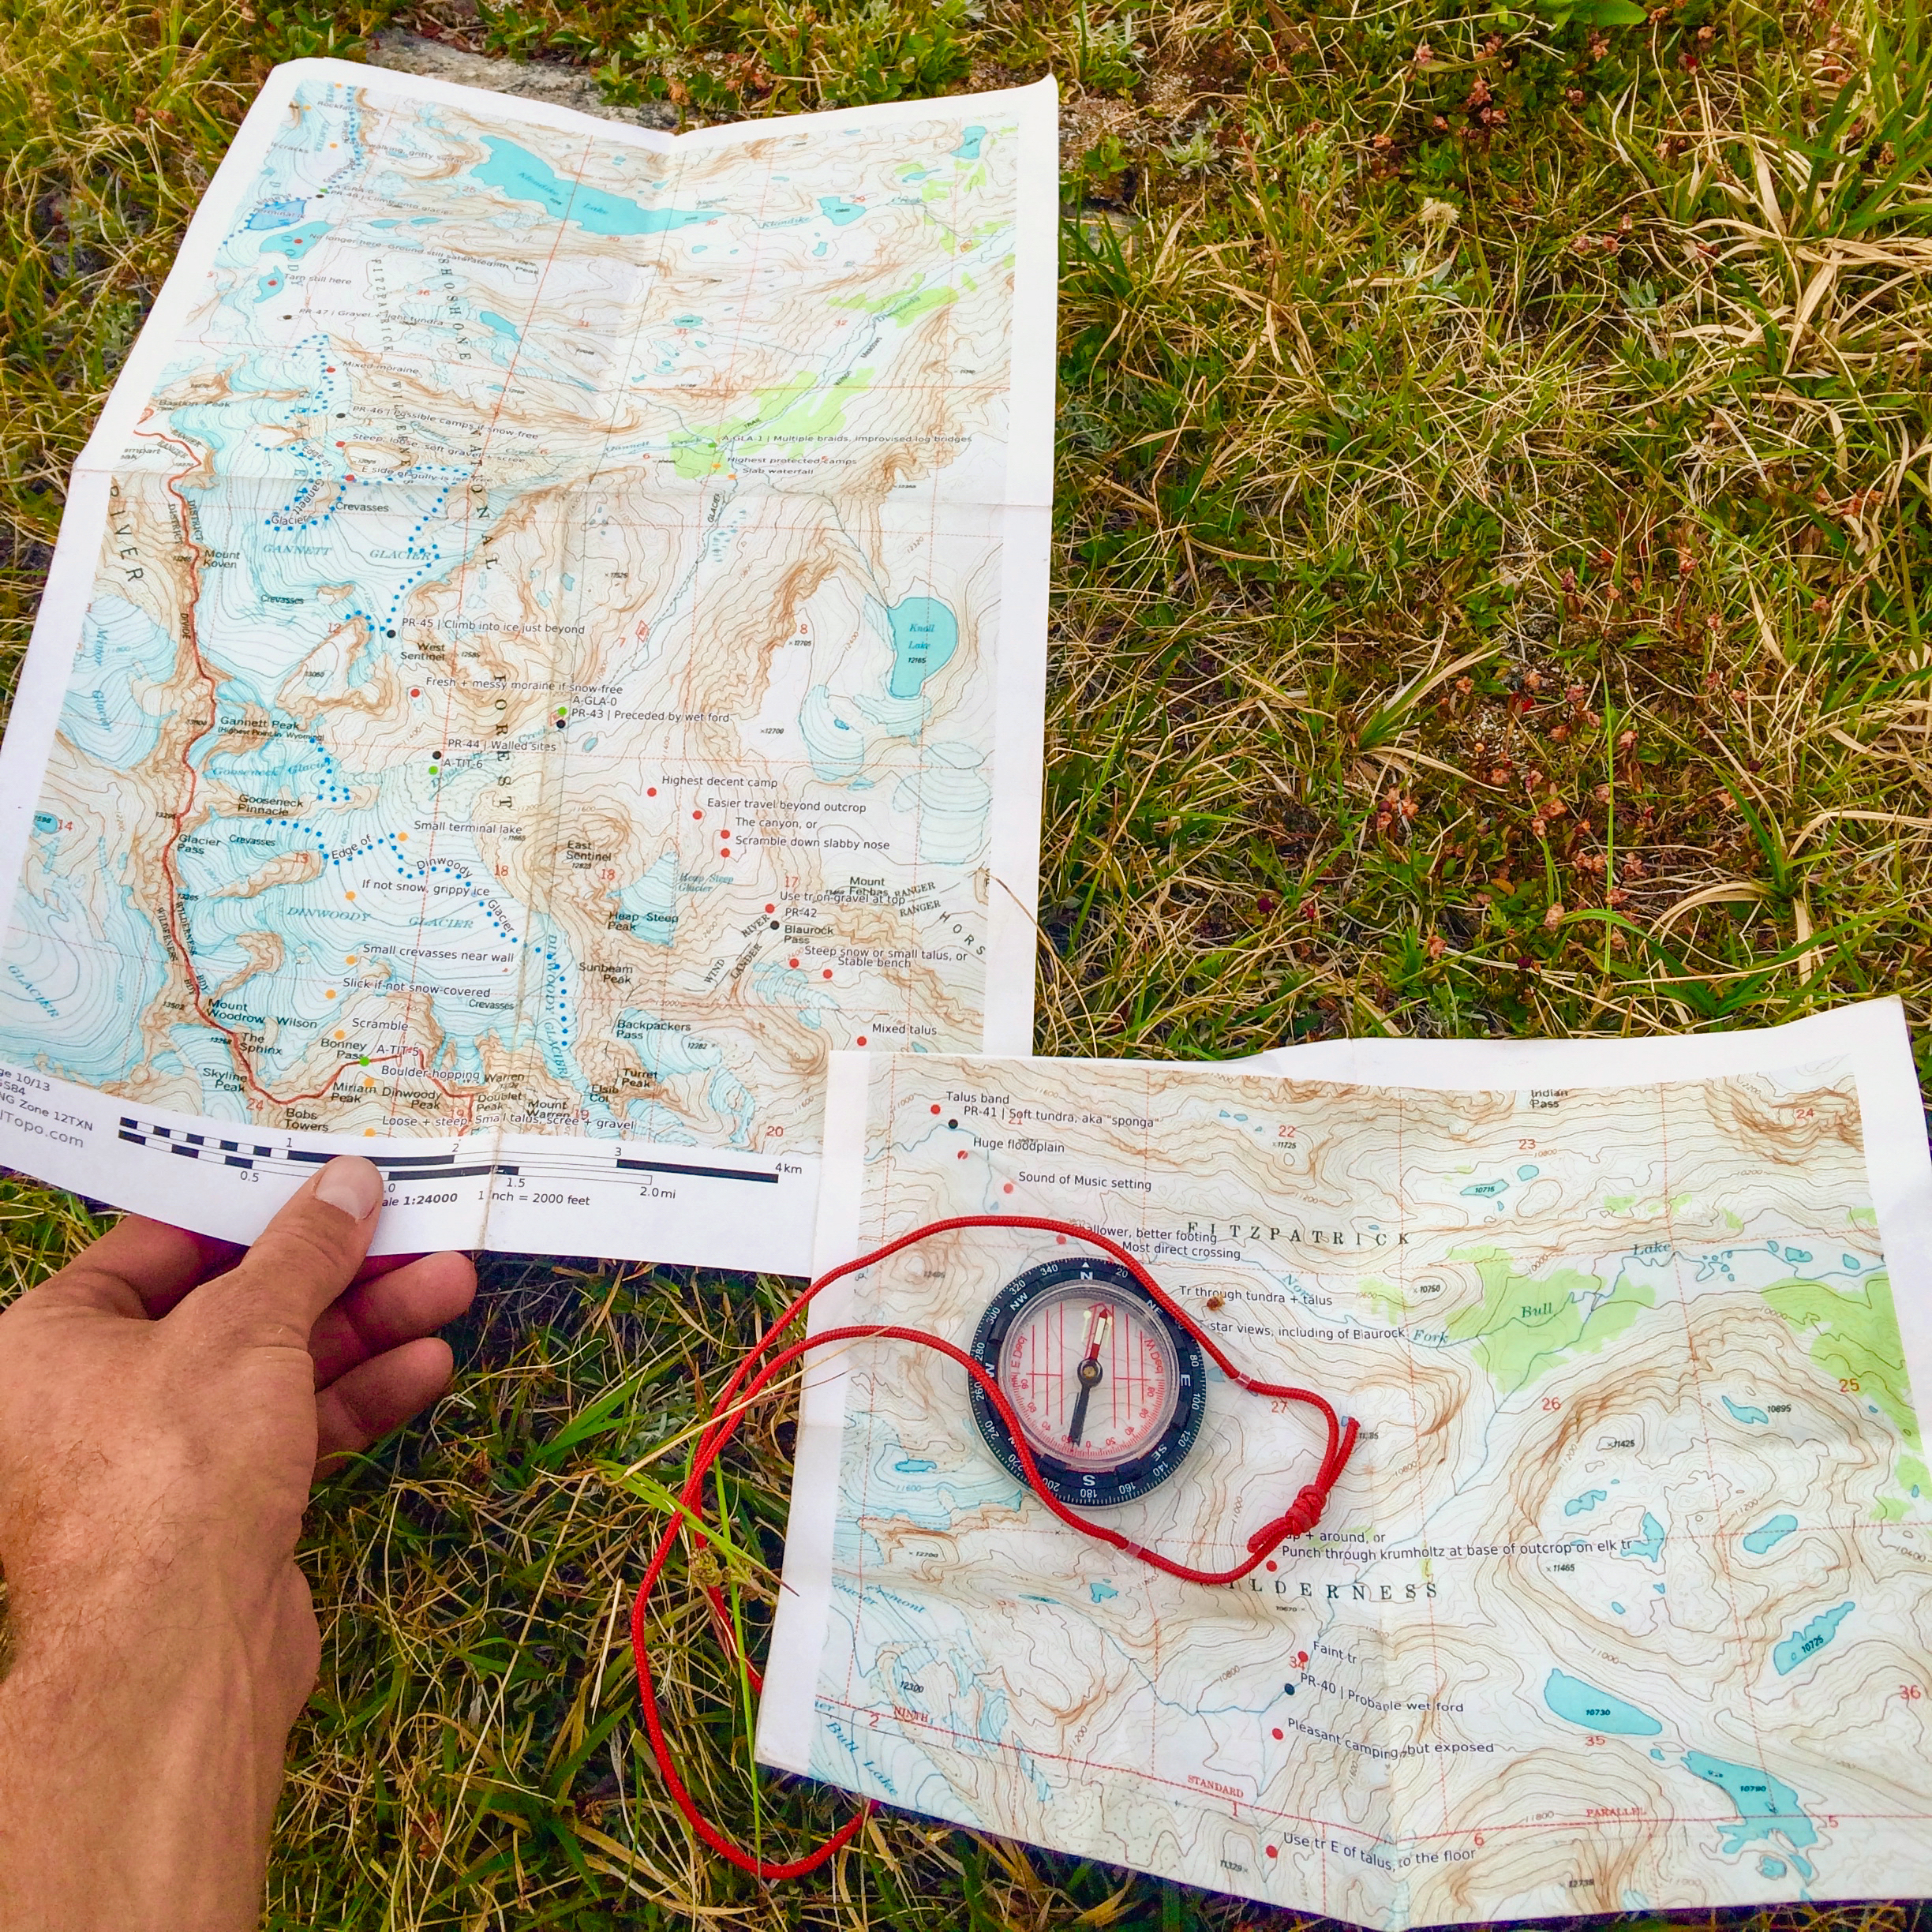 Andrew Skurka's guide-maps on the Wind River high-route. the author does an excellent job of noting critical navigation features and calling out hazards